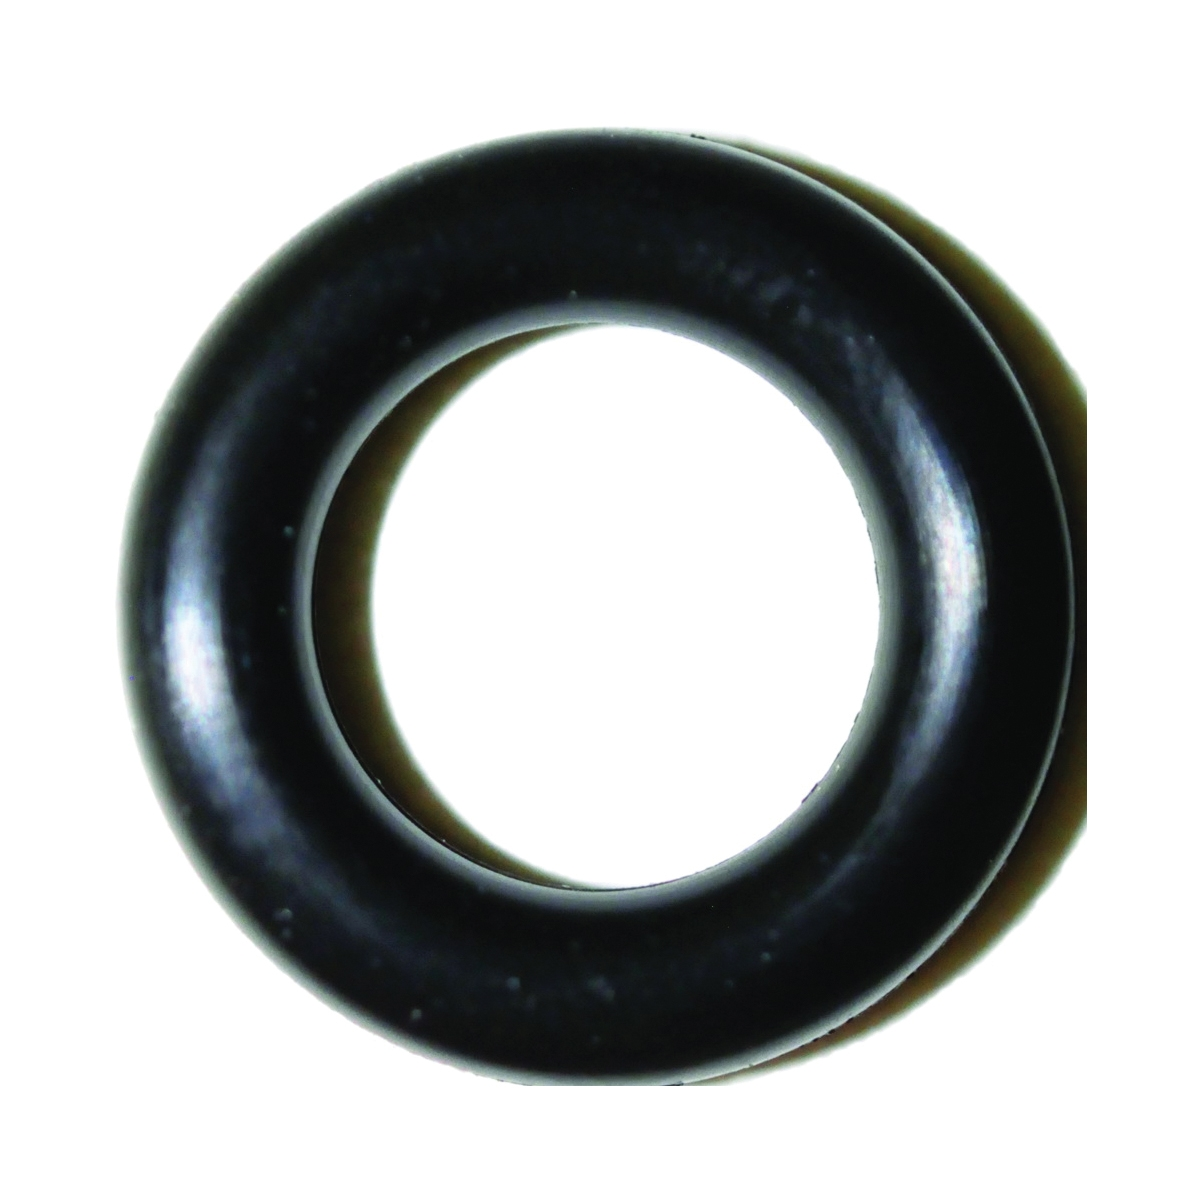 Picture of Danco 35711B Faucet O-Ring, #83, 5/16 in ID x 1/2 in OD Dia, 3/32 in Thick, Buna-N